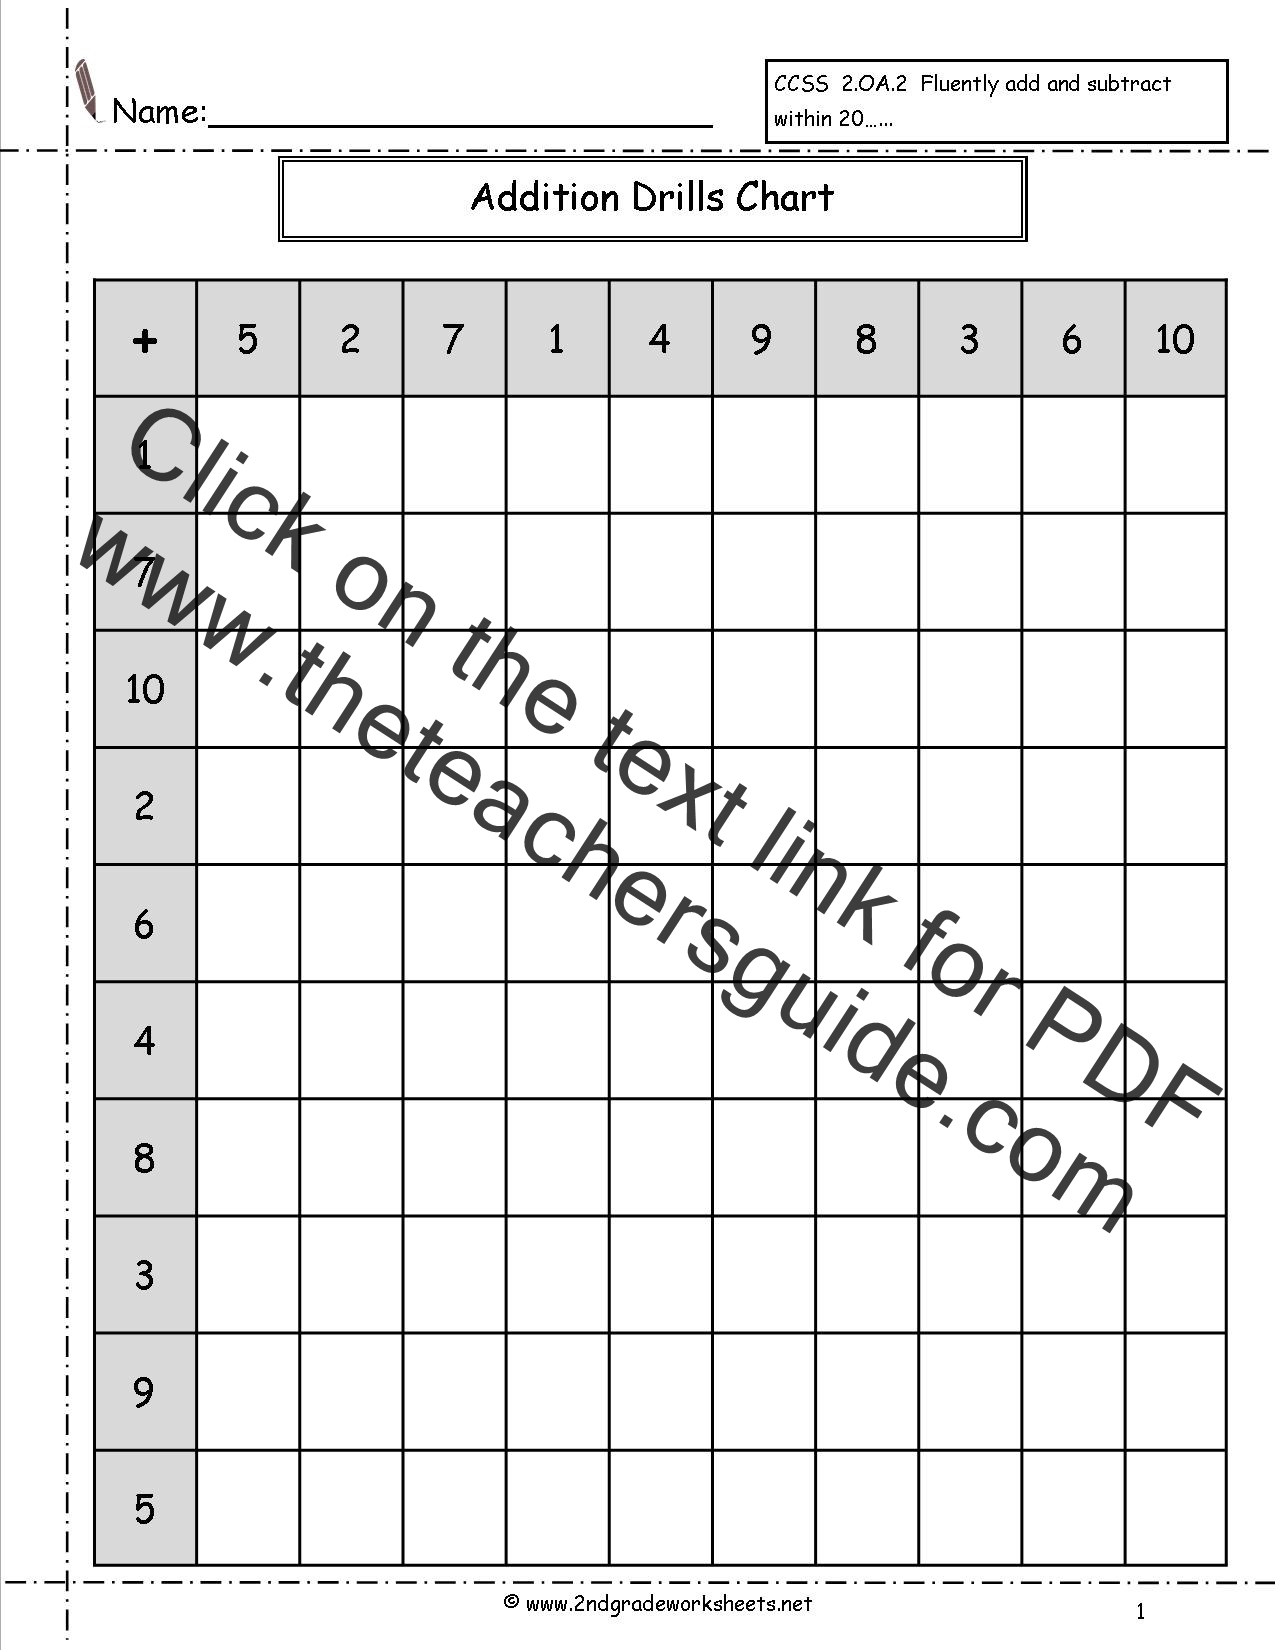 Worksheet 584800 Math Drill Worksheets Addition 5 Minute Math – Math Drills Worksheets